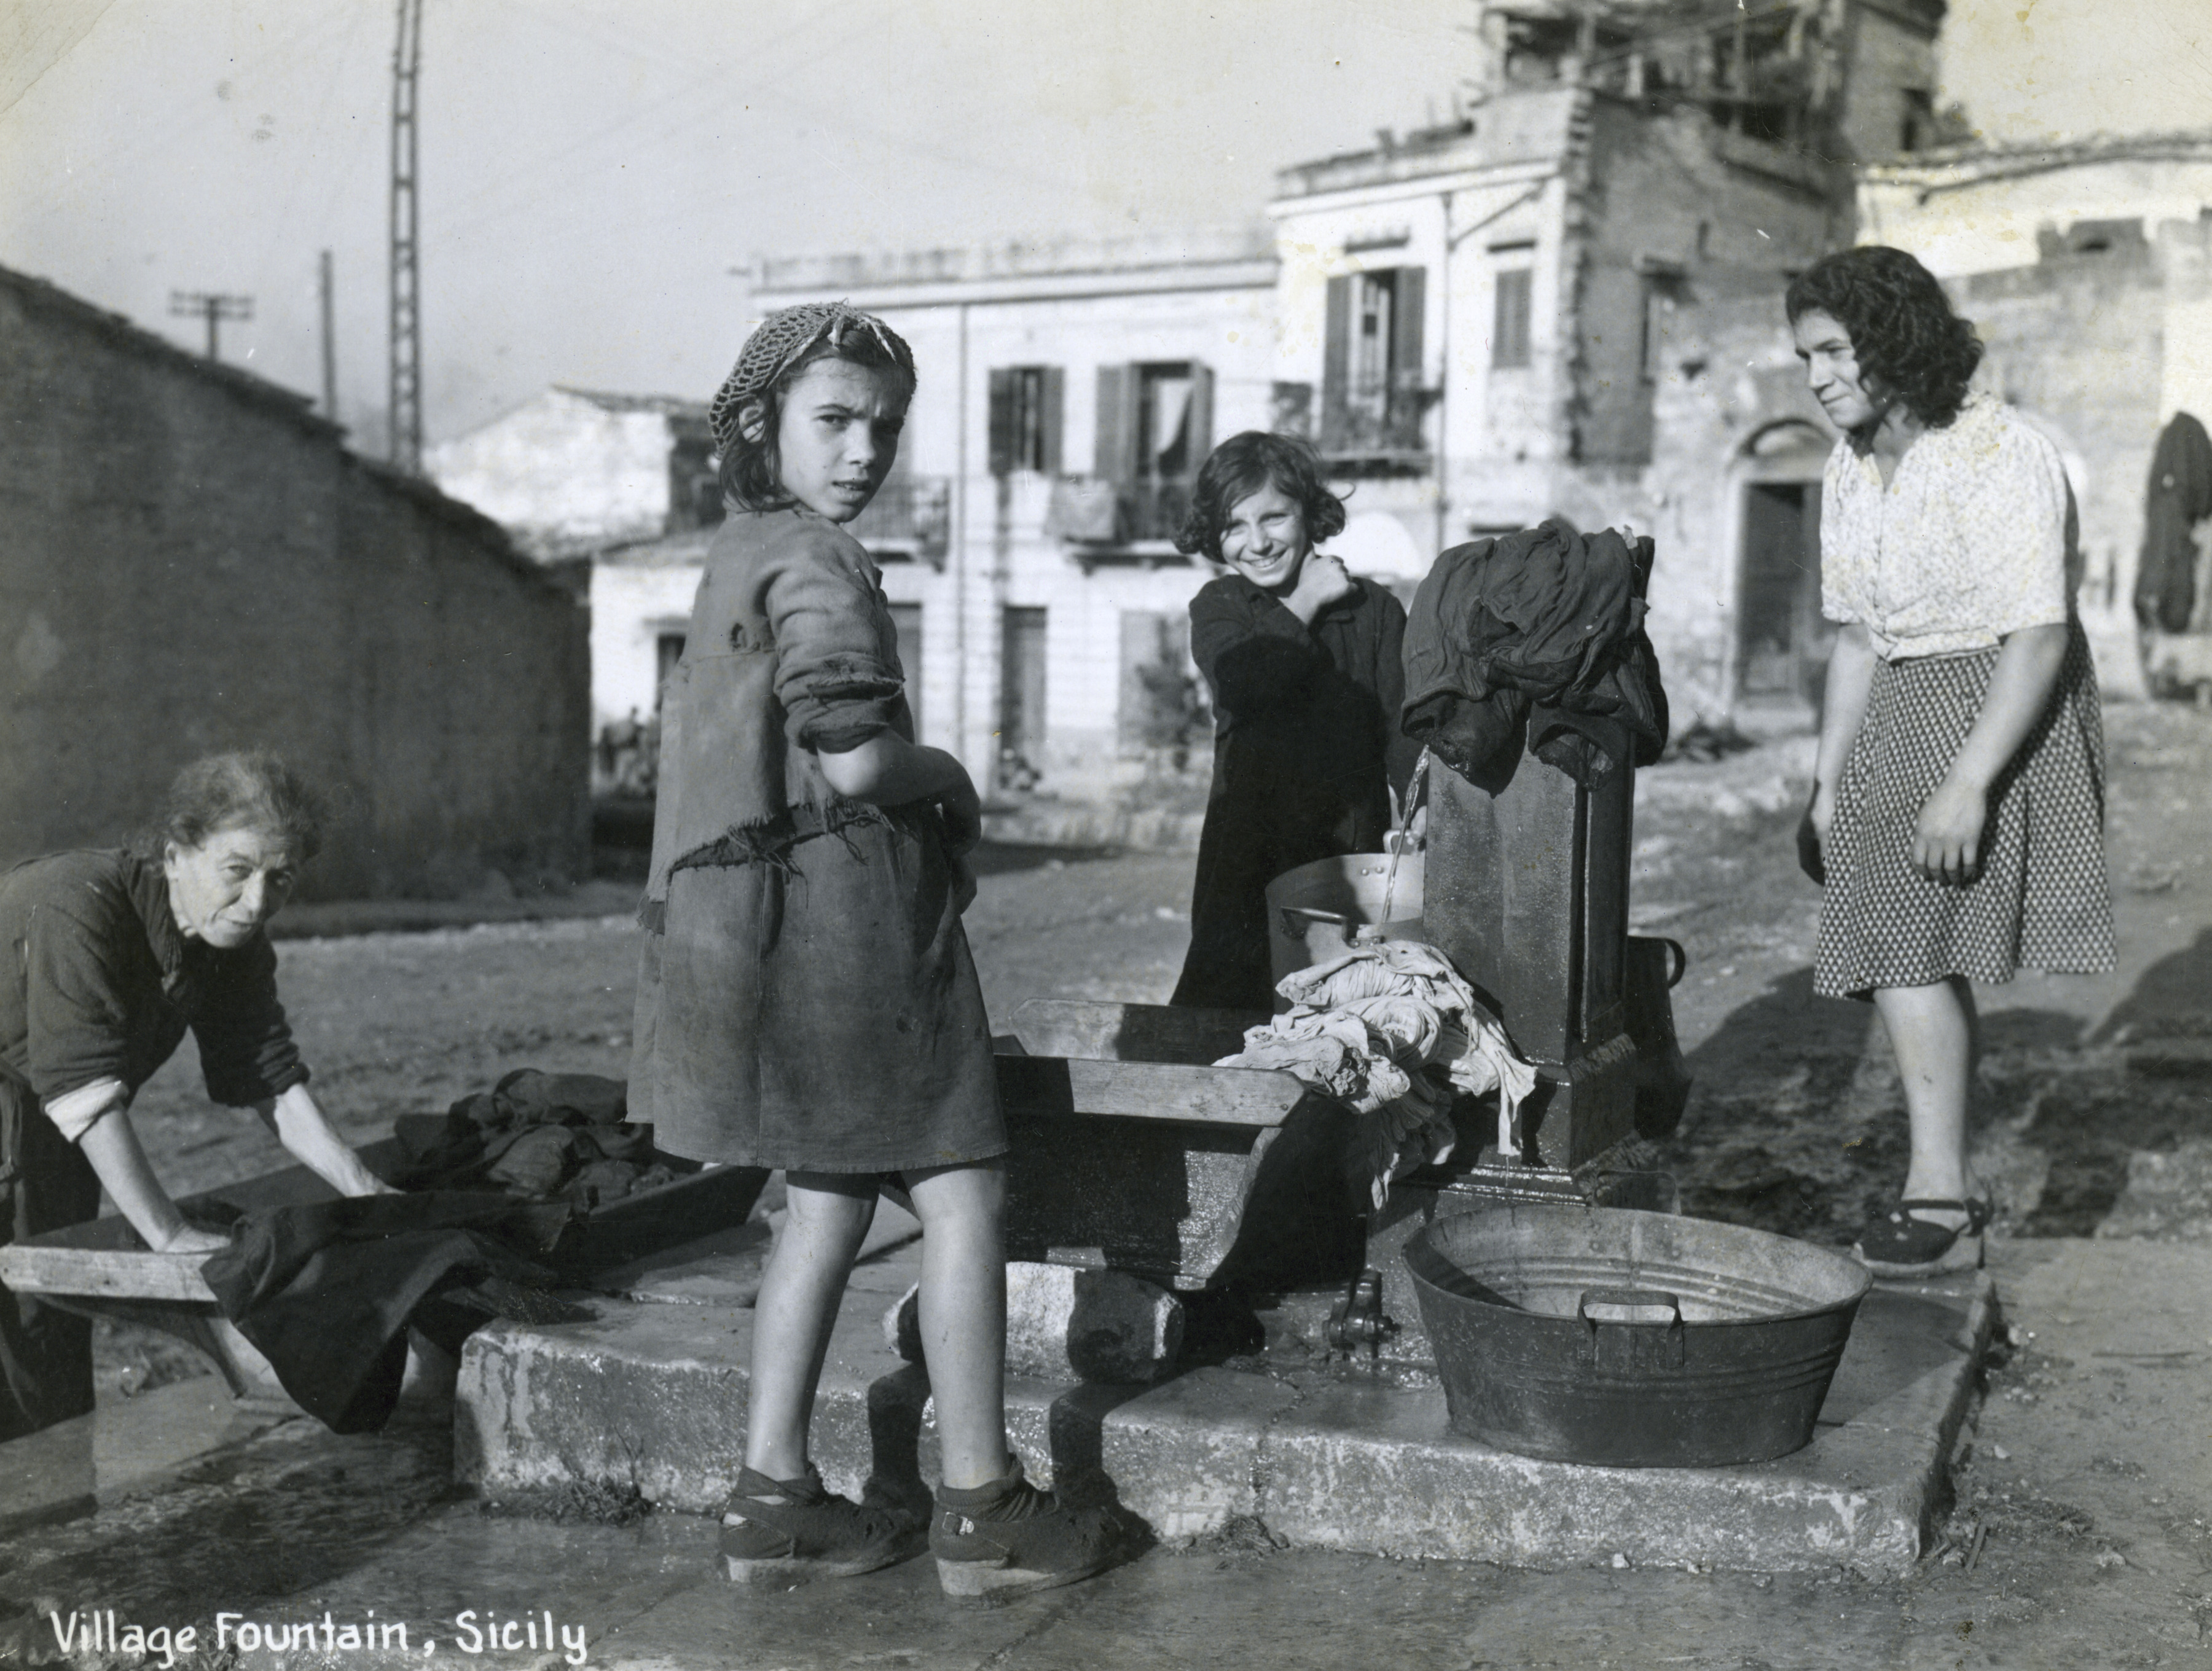 Villagers at fountain in Sicily, Italy in 1944-1945 | The ...